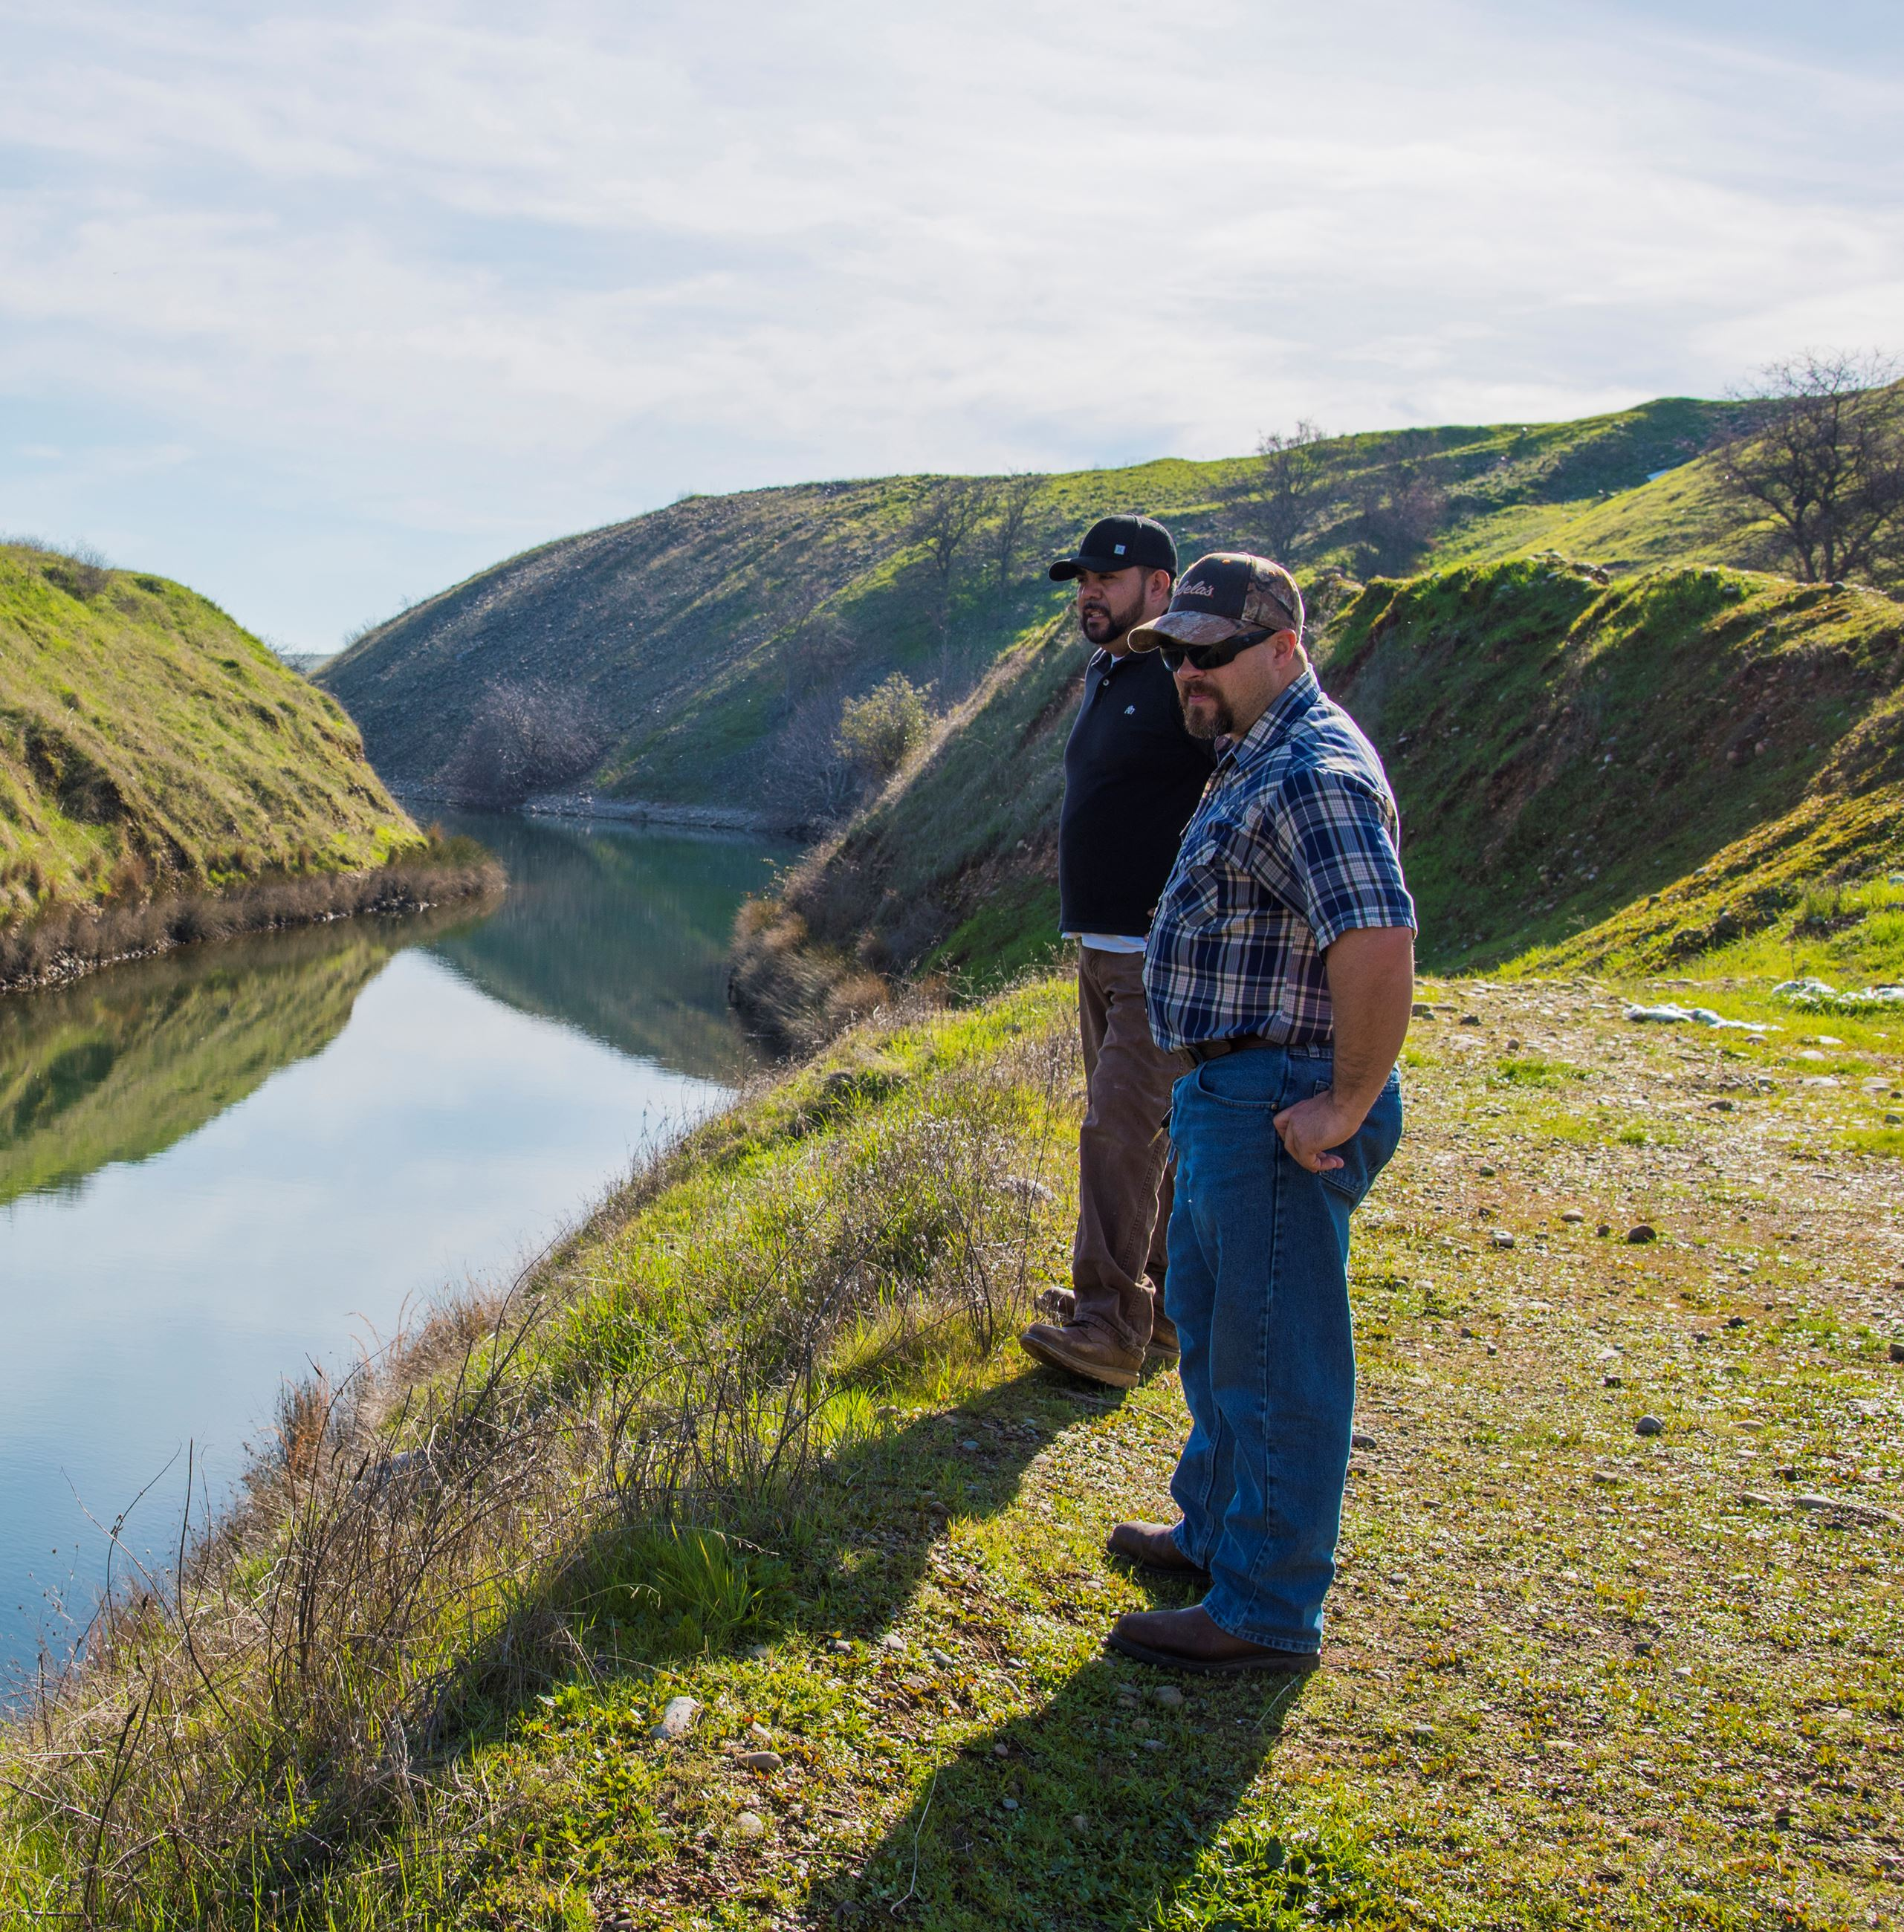 Yuba Water Agency's senior ditch tenders look out over a canal in Yuba County.